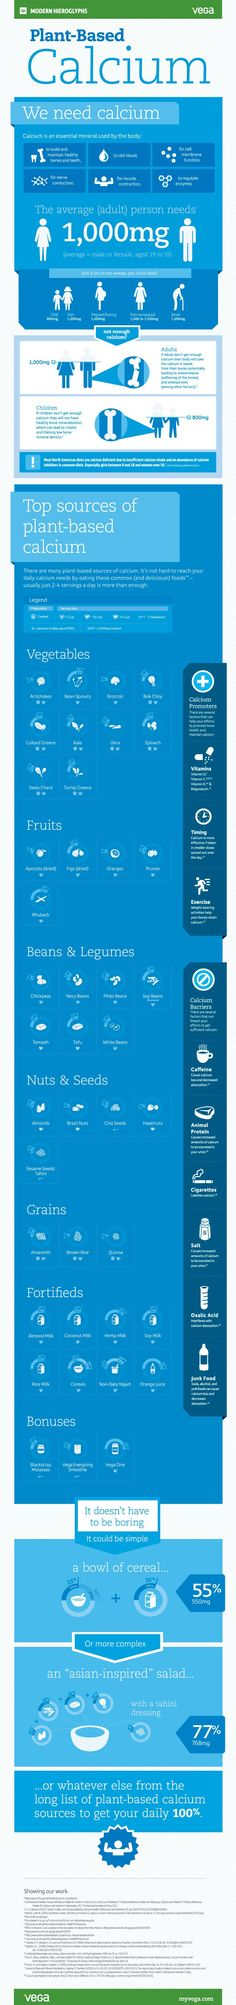 Plant-based Sources of Calcium! Whatever our reasons for avoiding dairy, isn't it great that when grow up we have the freedom and information available to discover options for getting enough calcium in our diets without the moo? Check out our new amazing infographic on calcium, and learn which vegetables and seeds pack the biggest calcium punch.